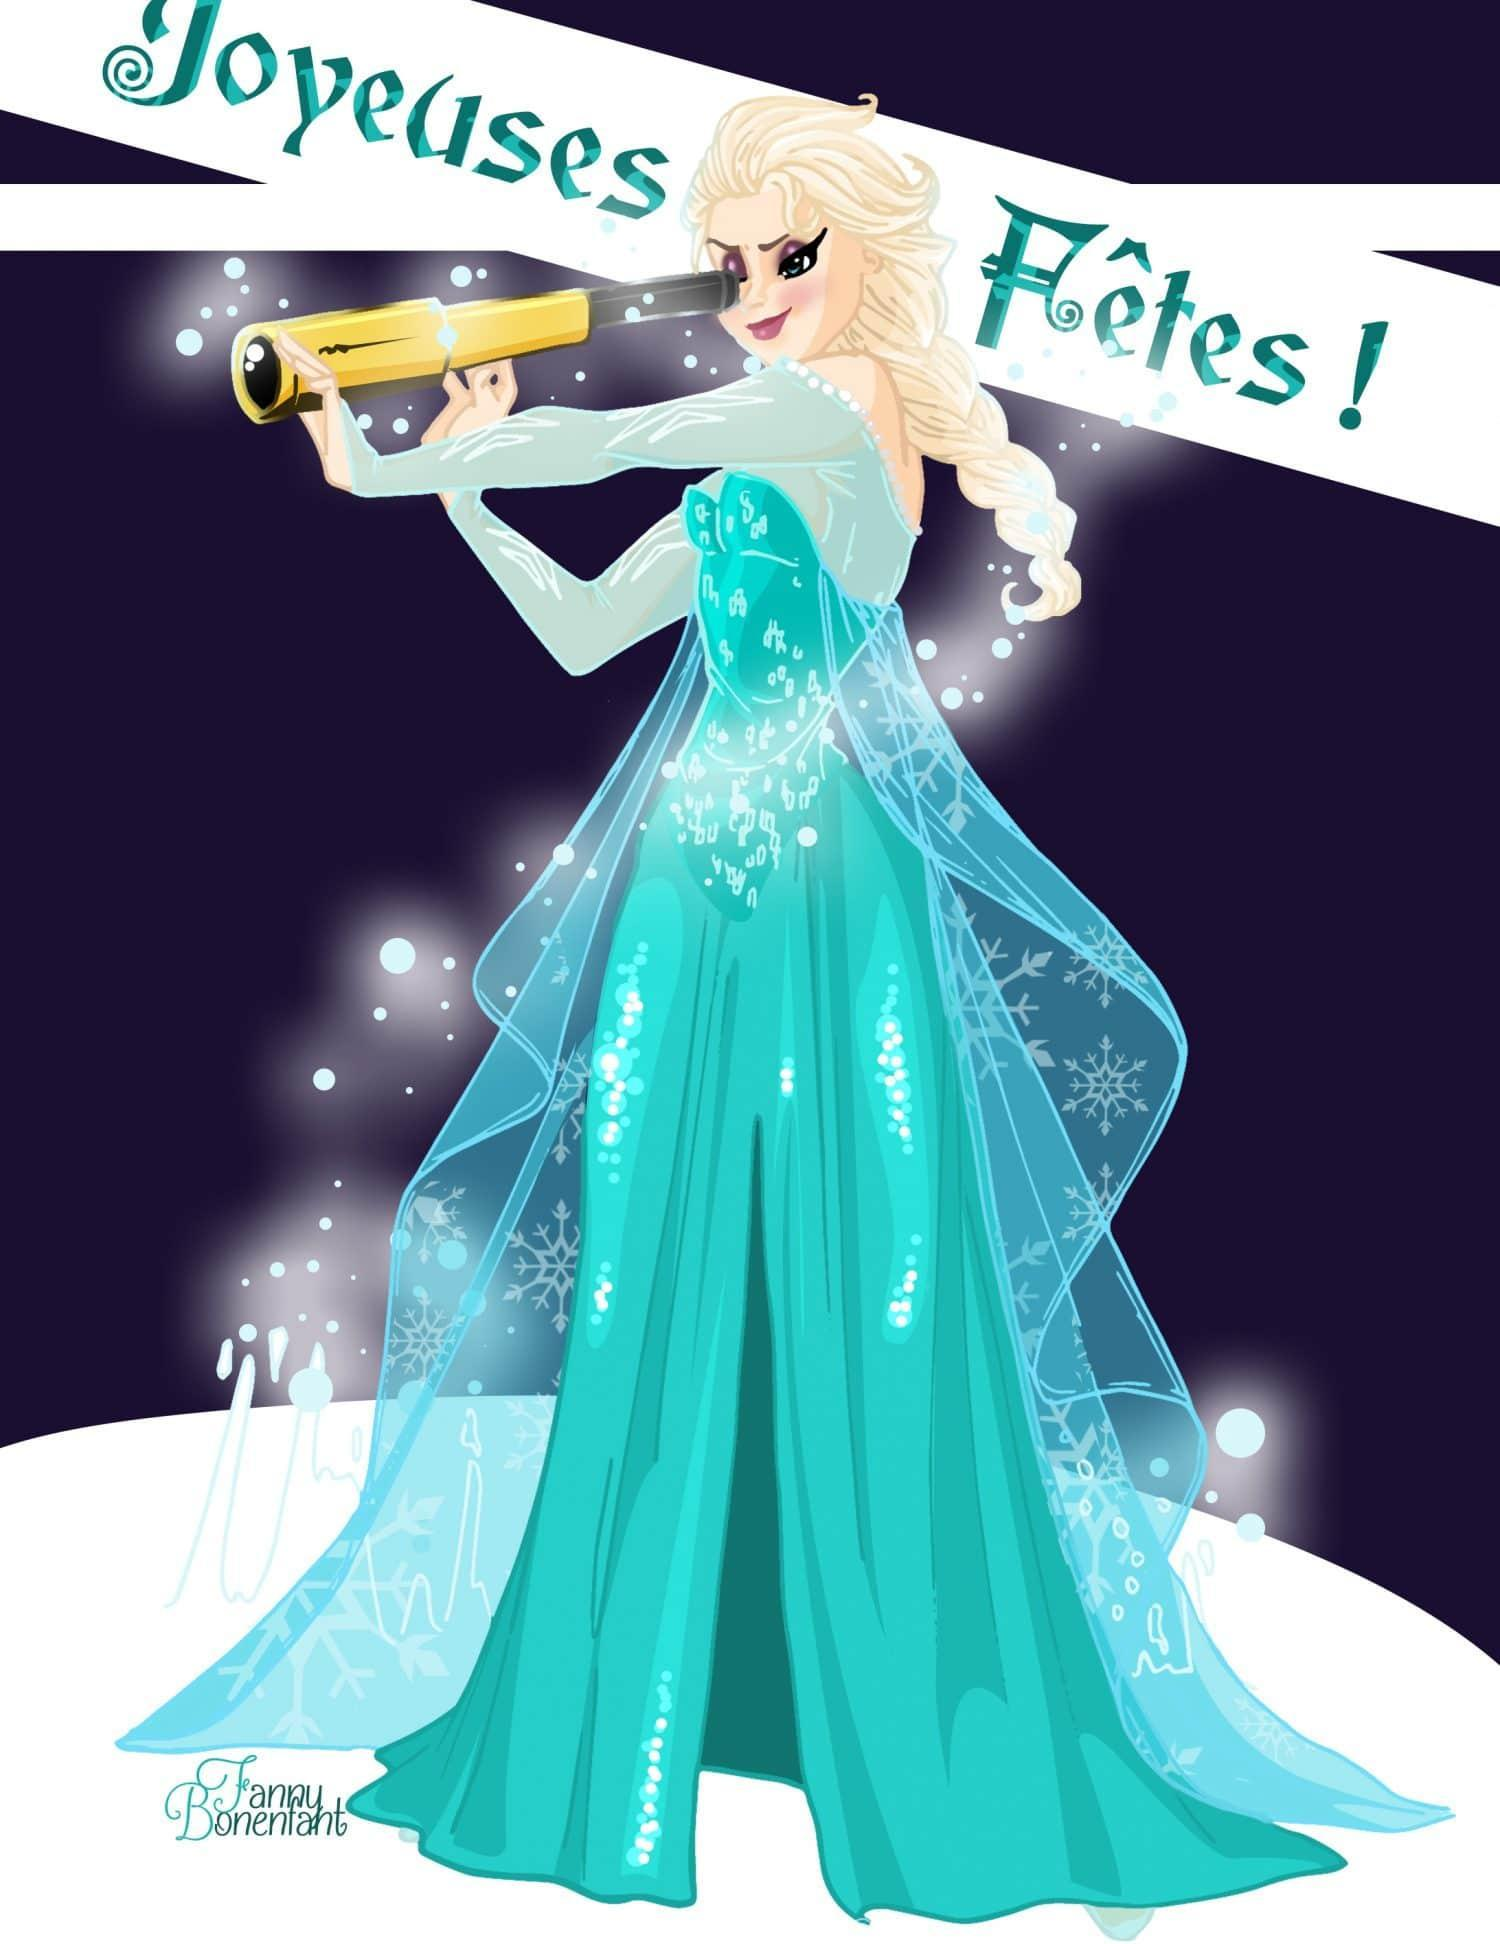 carte de voeux 2013 Elsa Reine des Neiges Disney Fanny Bonenfant illustrations